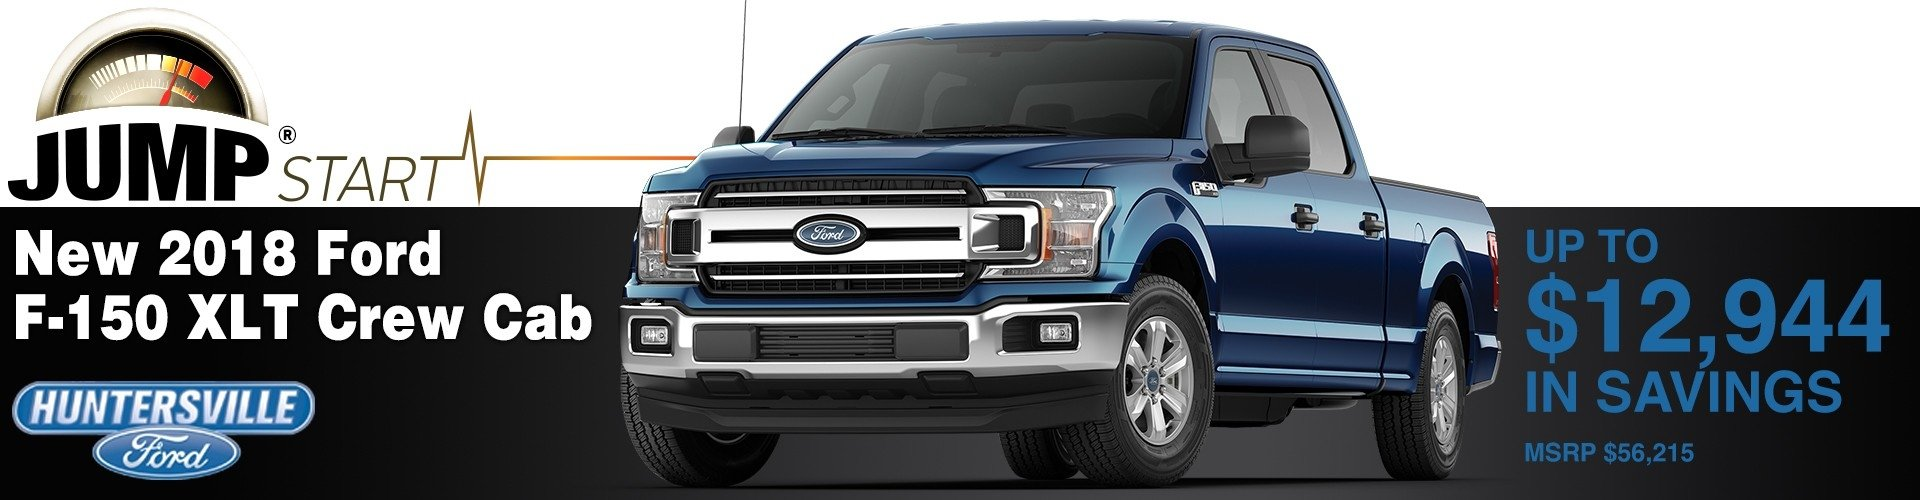 light up the season f150 special